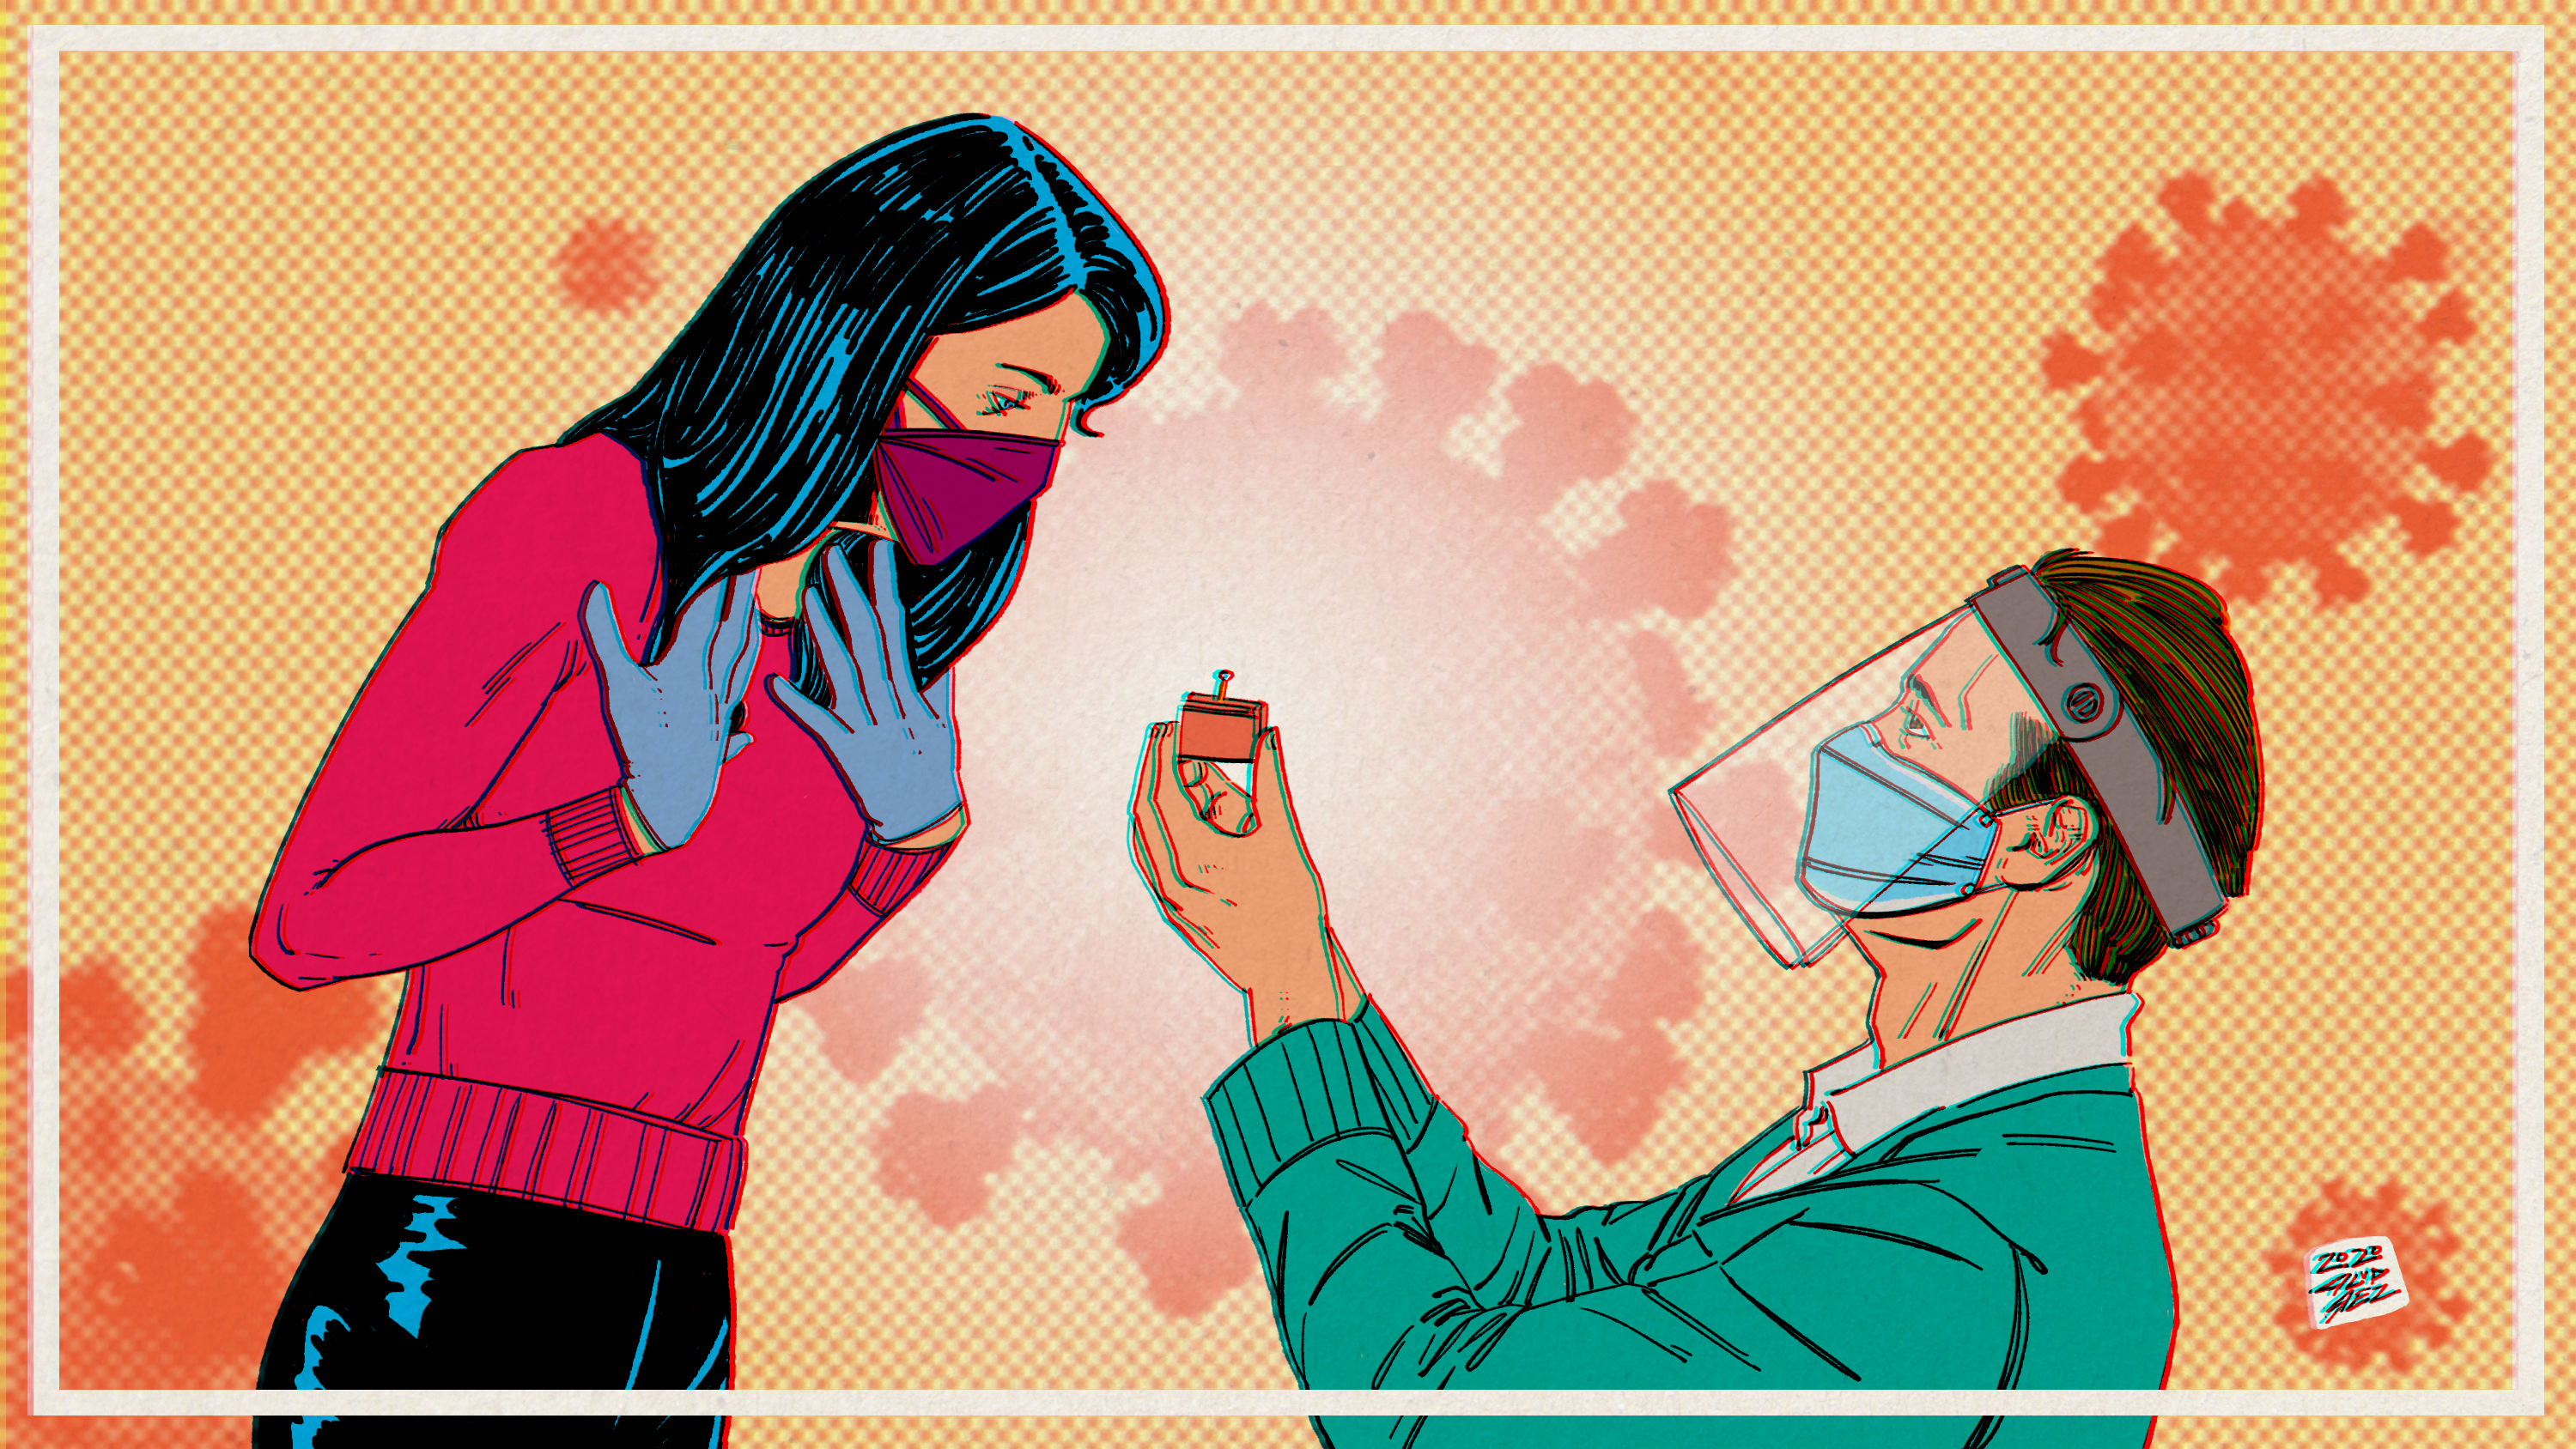 An illustration of a masked man in a face shield proposing to a masked woman.